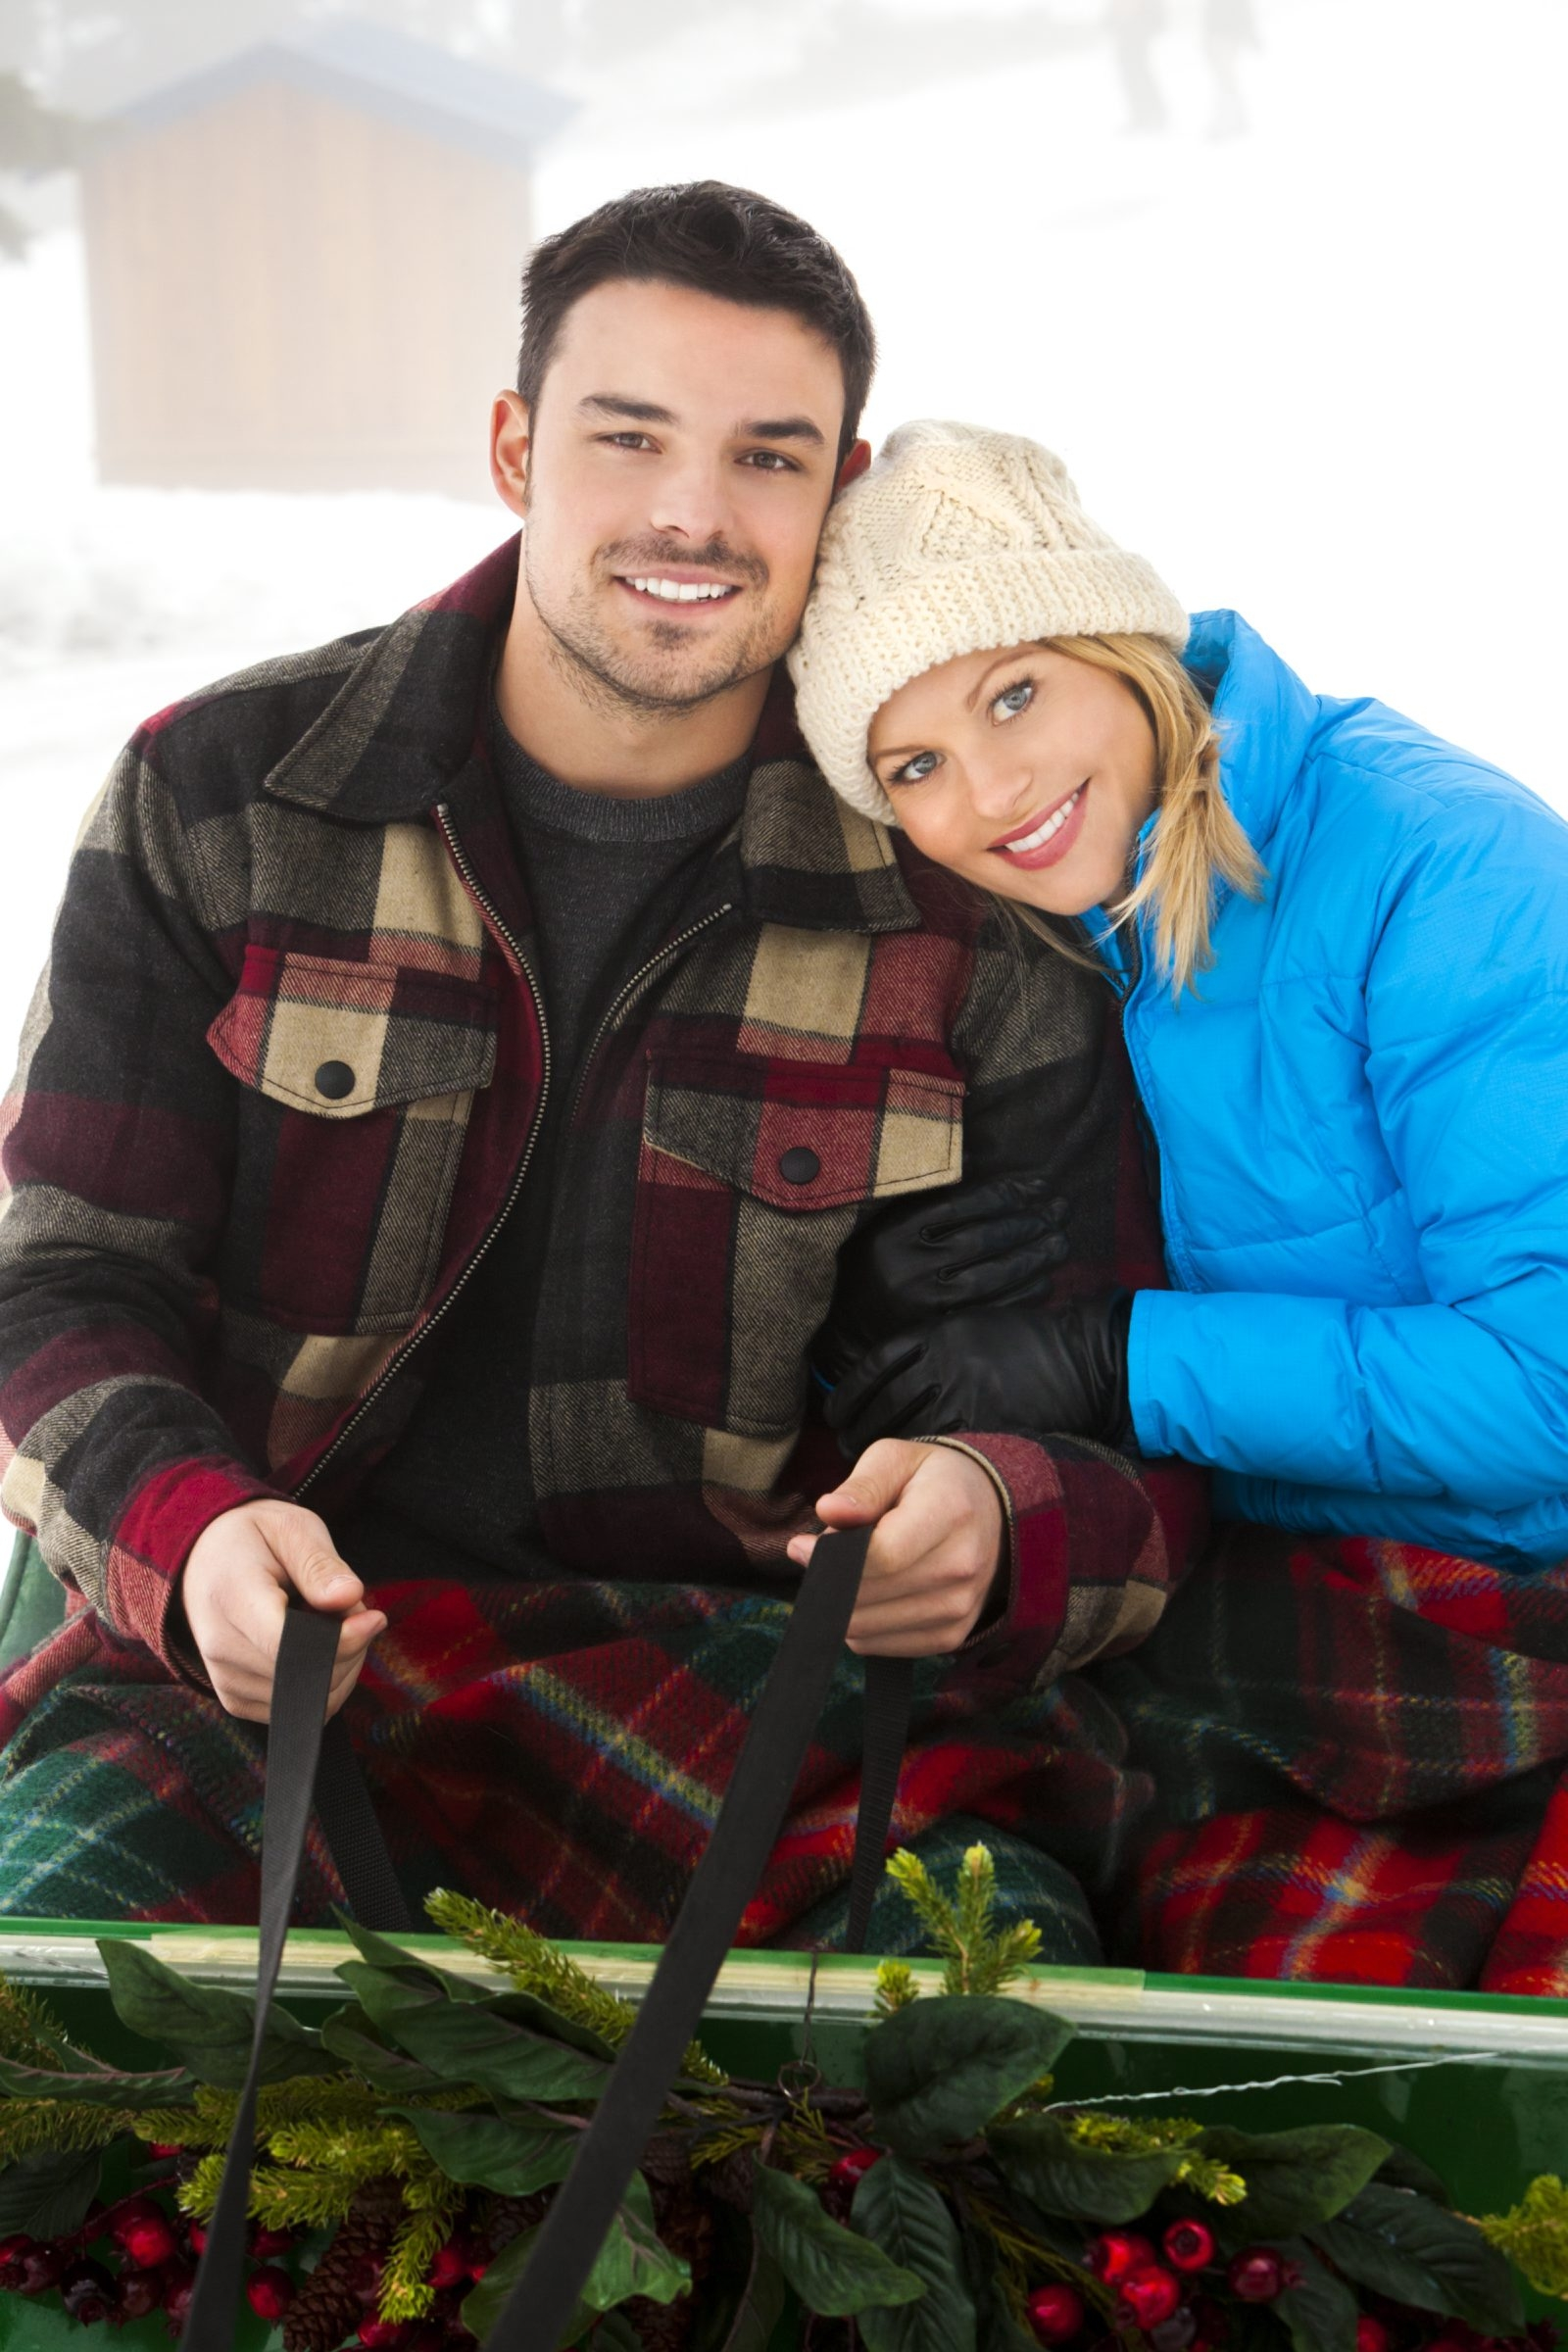 When a family owned ski lodge is sold to a hotel conglomerate, a driven hotel executive must decide if she should follow the company orders to transform the lodge into a modern winter hot spot, or embrace her newfound holiday spirit and keep its Christmas traditions alive. From left to right: Jesse Hutch and Candace Cameron Bure